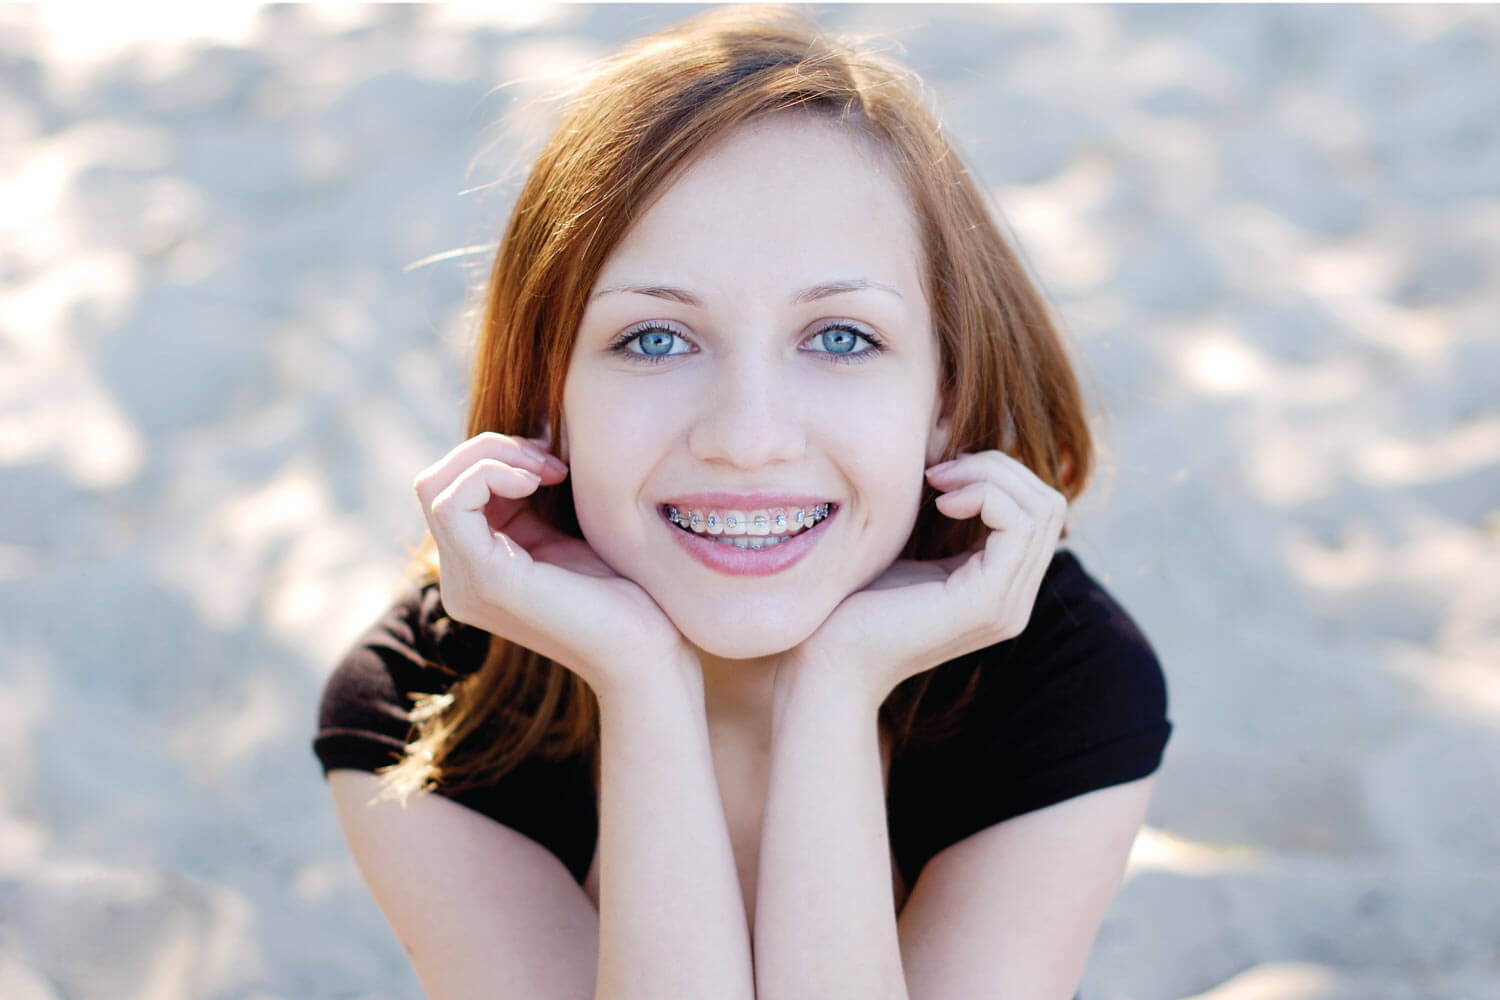 young woman leaning her chin on her hands smiling to show off her braces